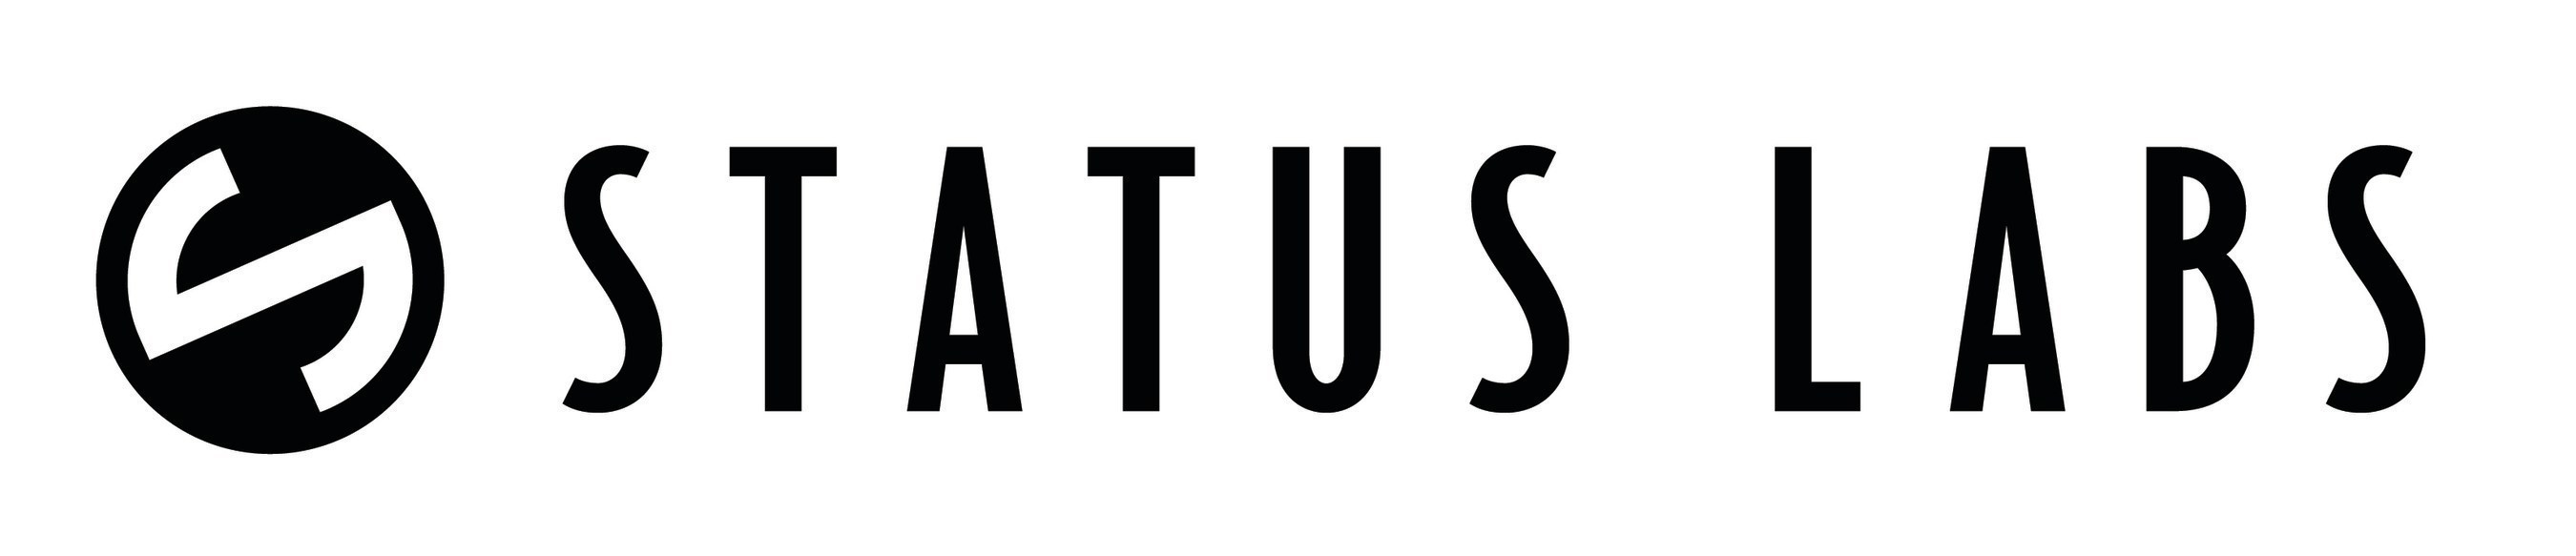 Status Labs digital reputation management firm based in Austin, Texas with offices in New York and Sao Paolo, Brazil.